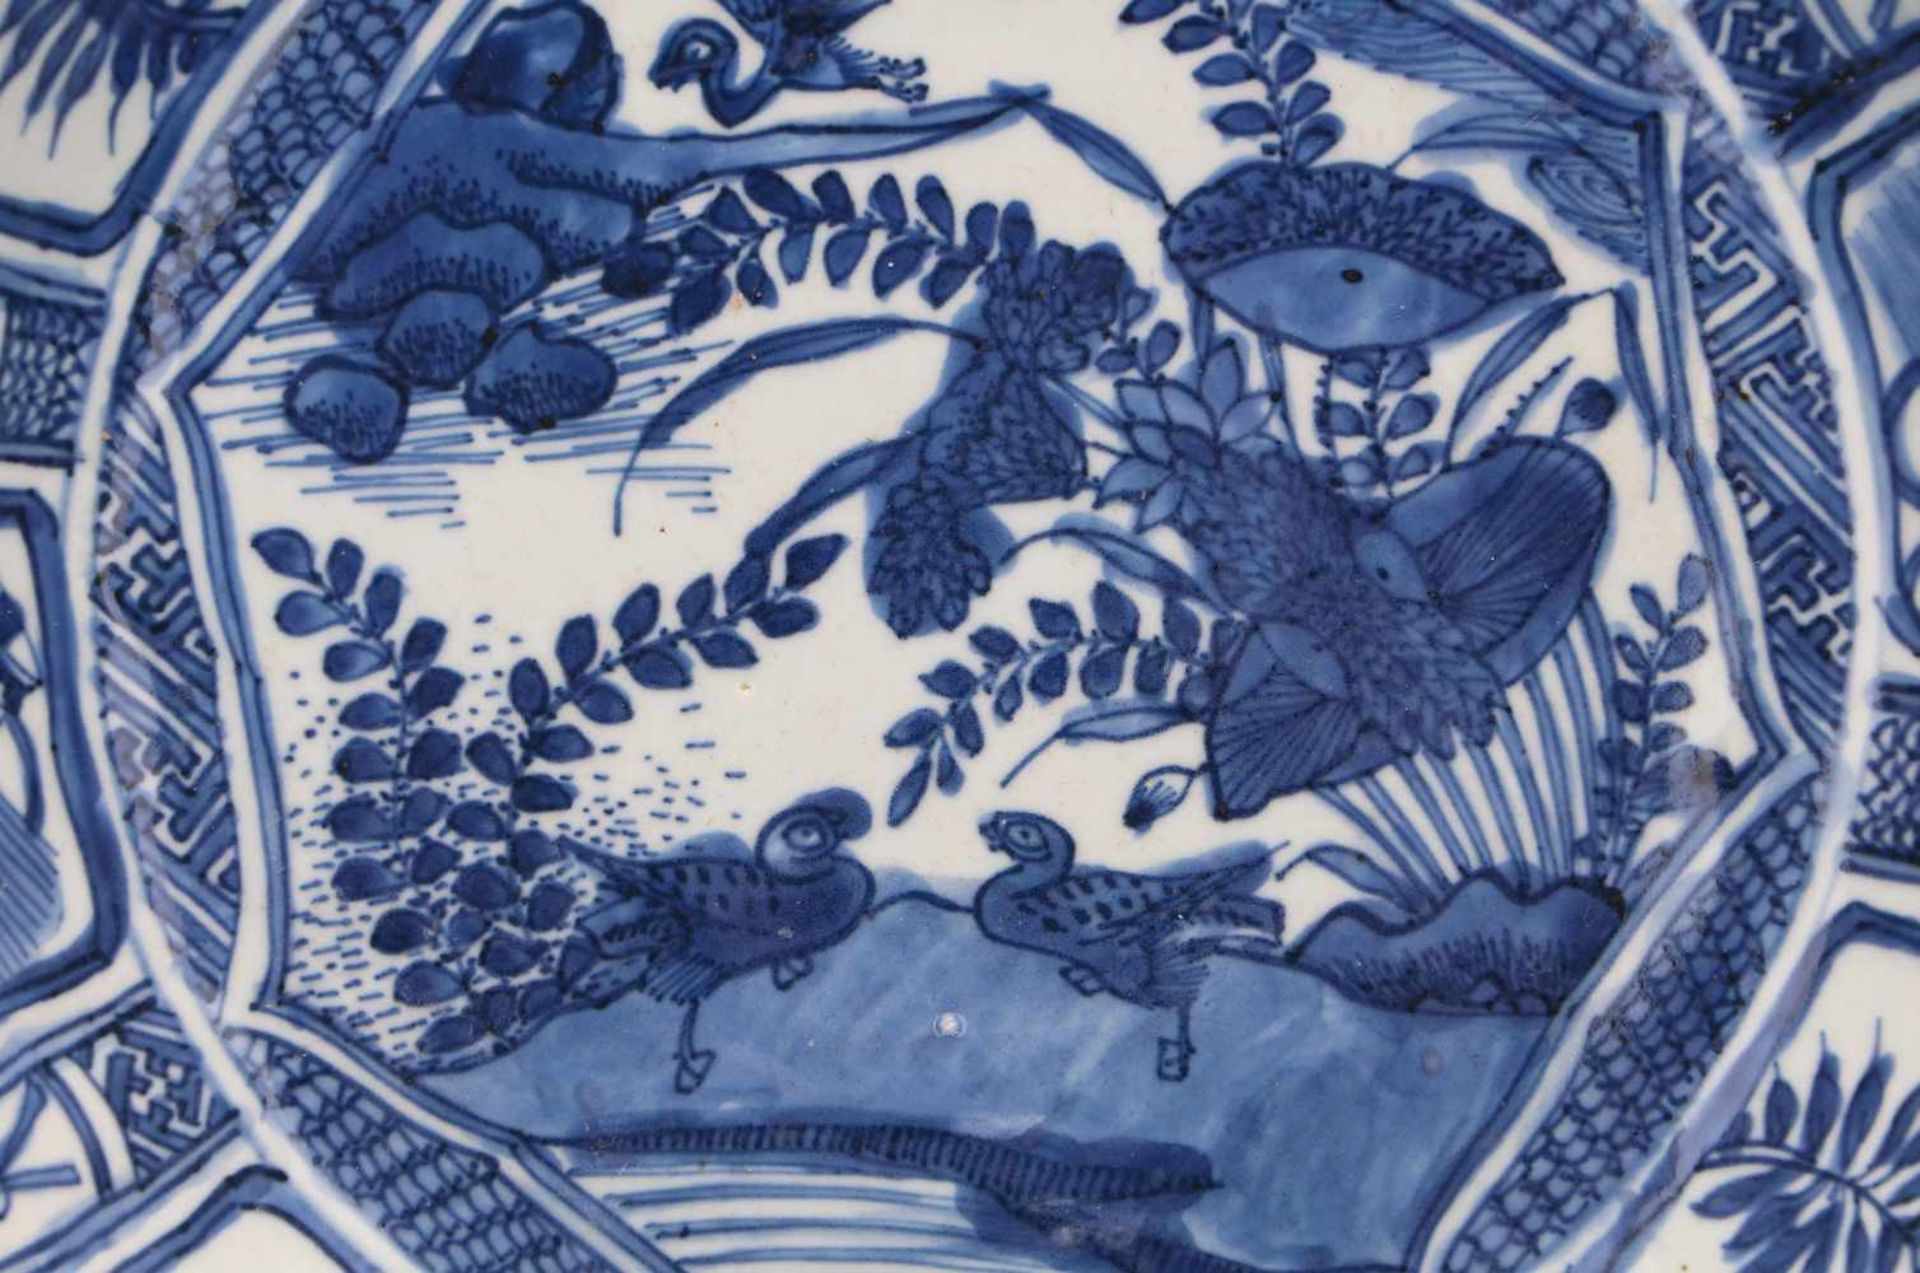 A blue and white porcelain charger, decorated with water birds and reserves depicting peaches and - Bild 3 aus 3